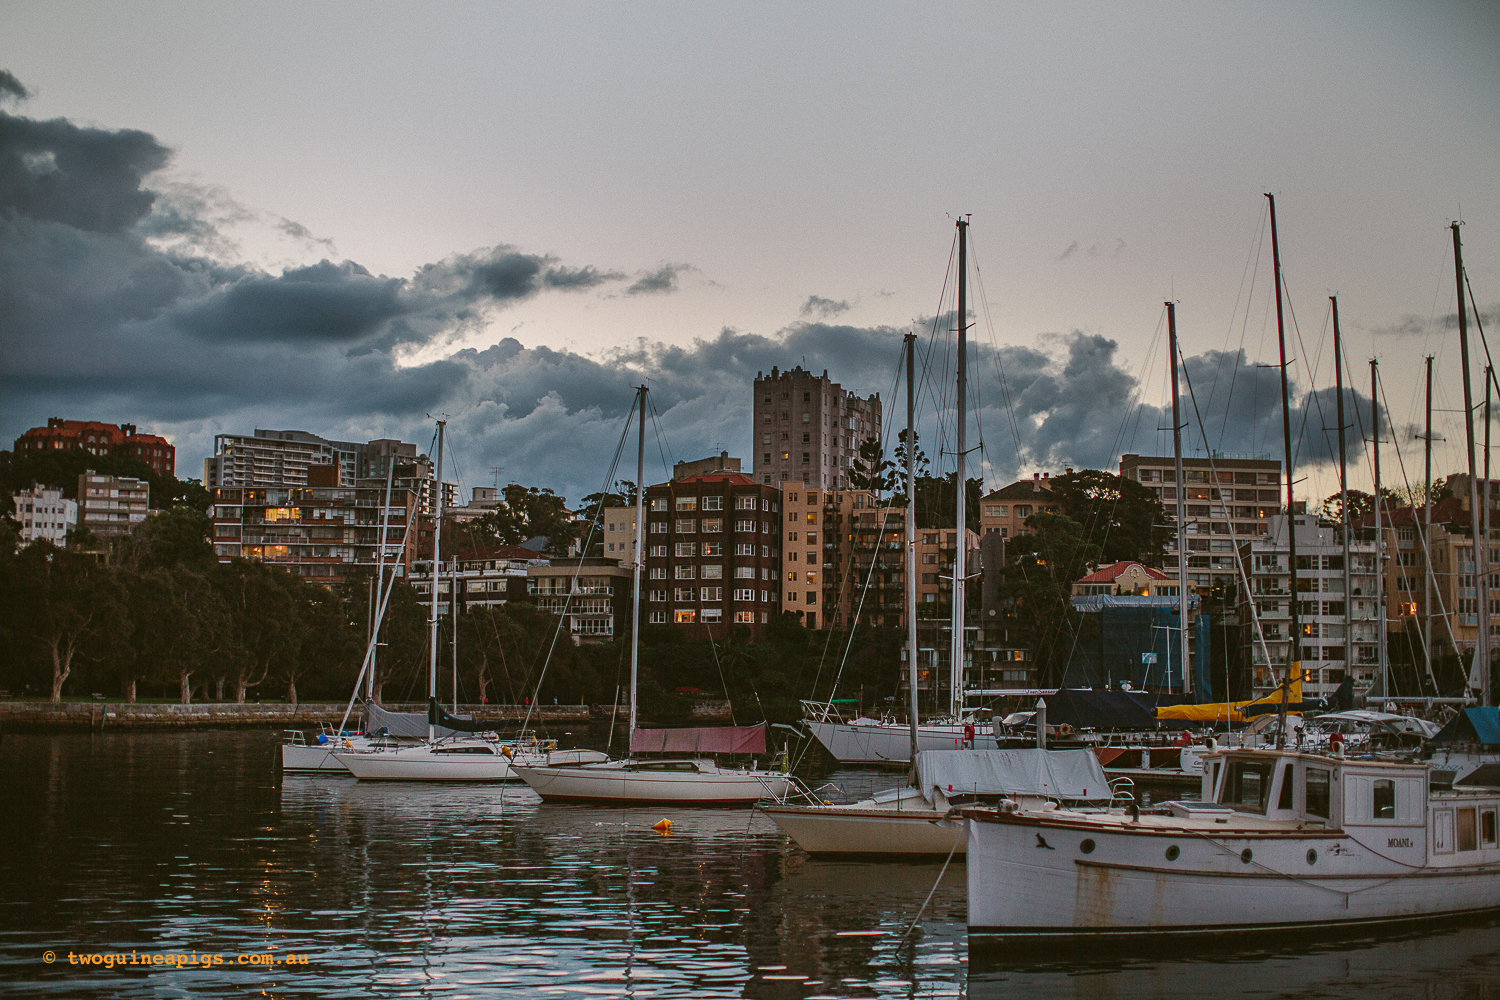 twoguineapigs_rushcutters_bay_winter_sunset_landscapes_1500-22.jpg